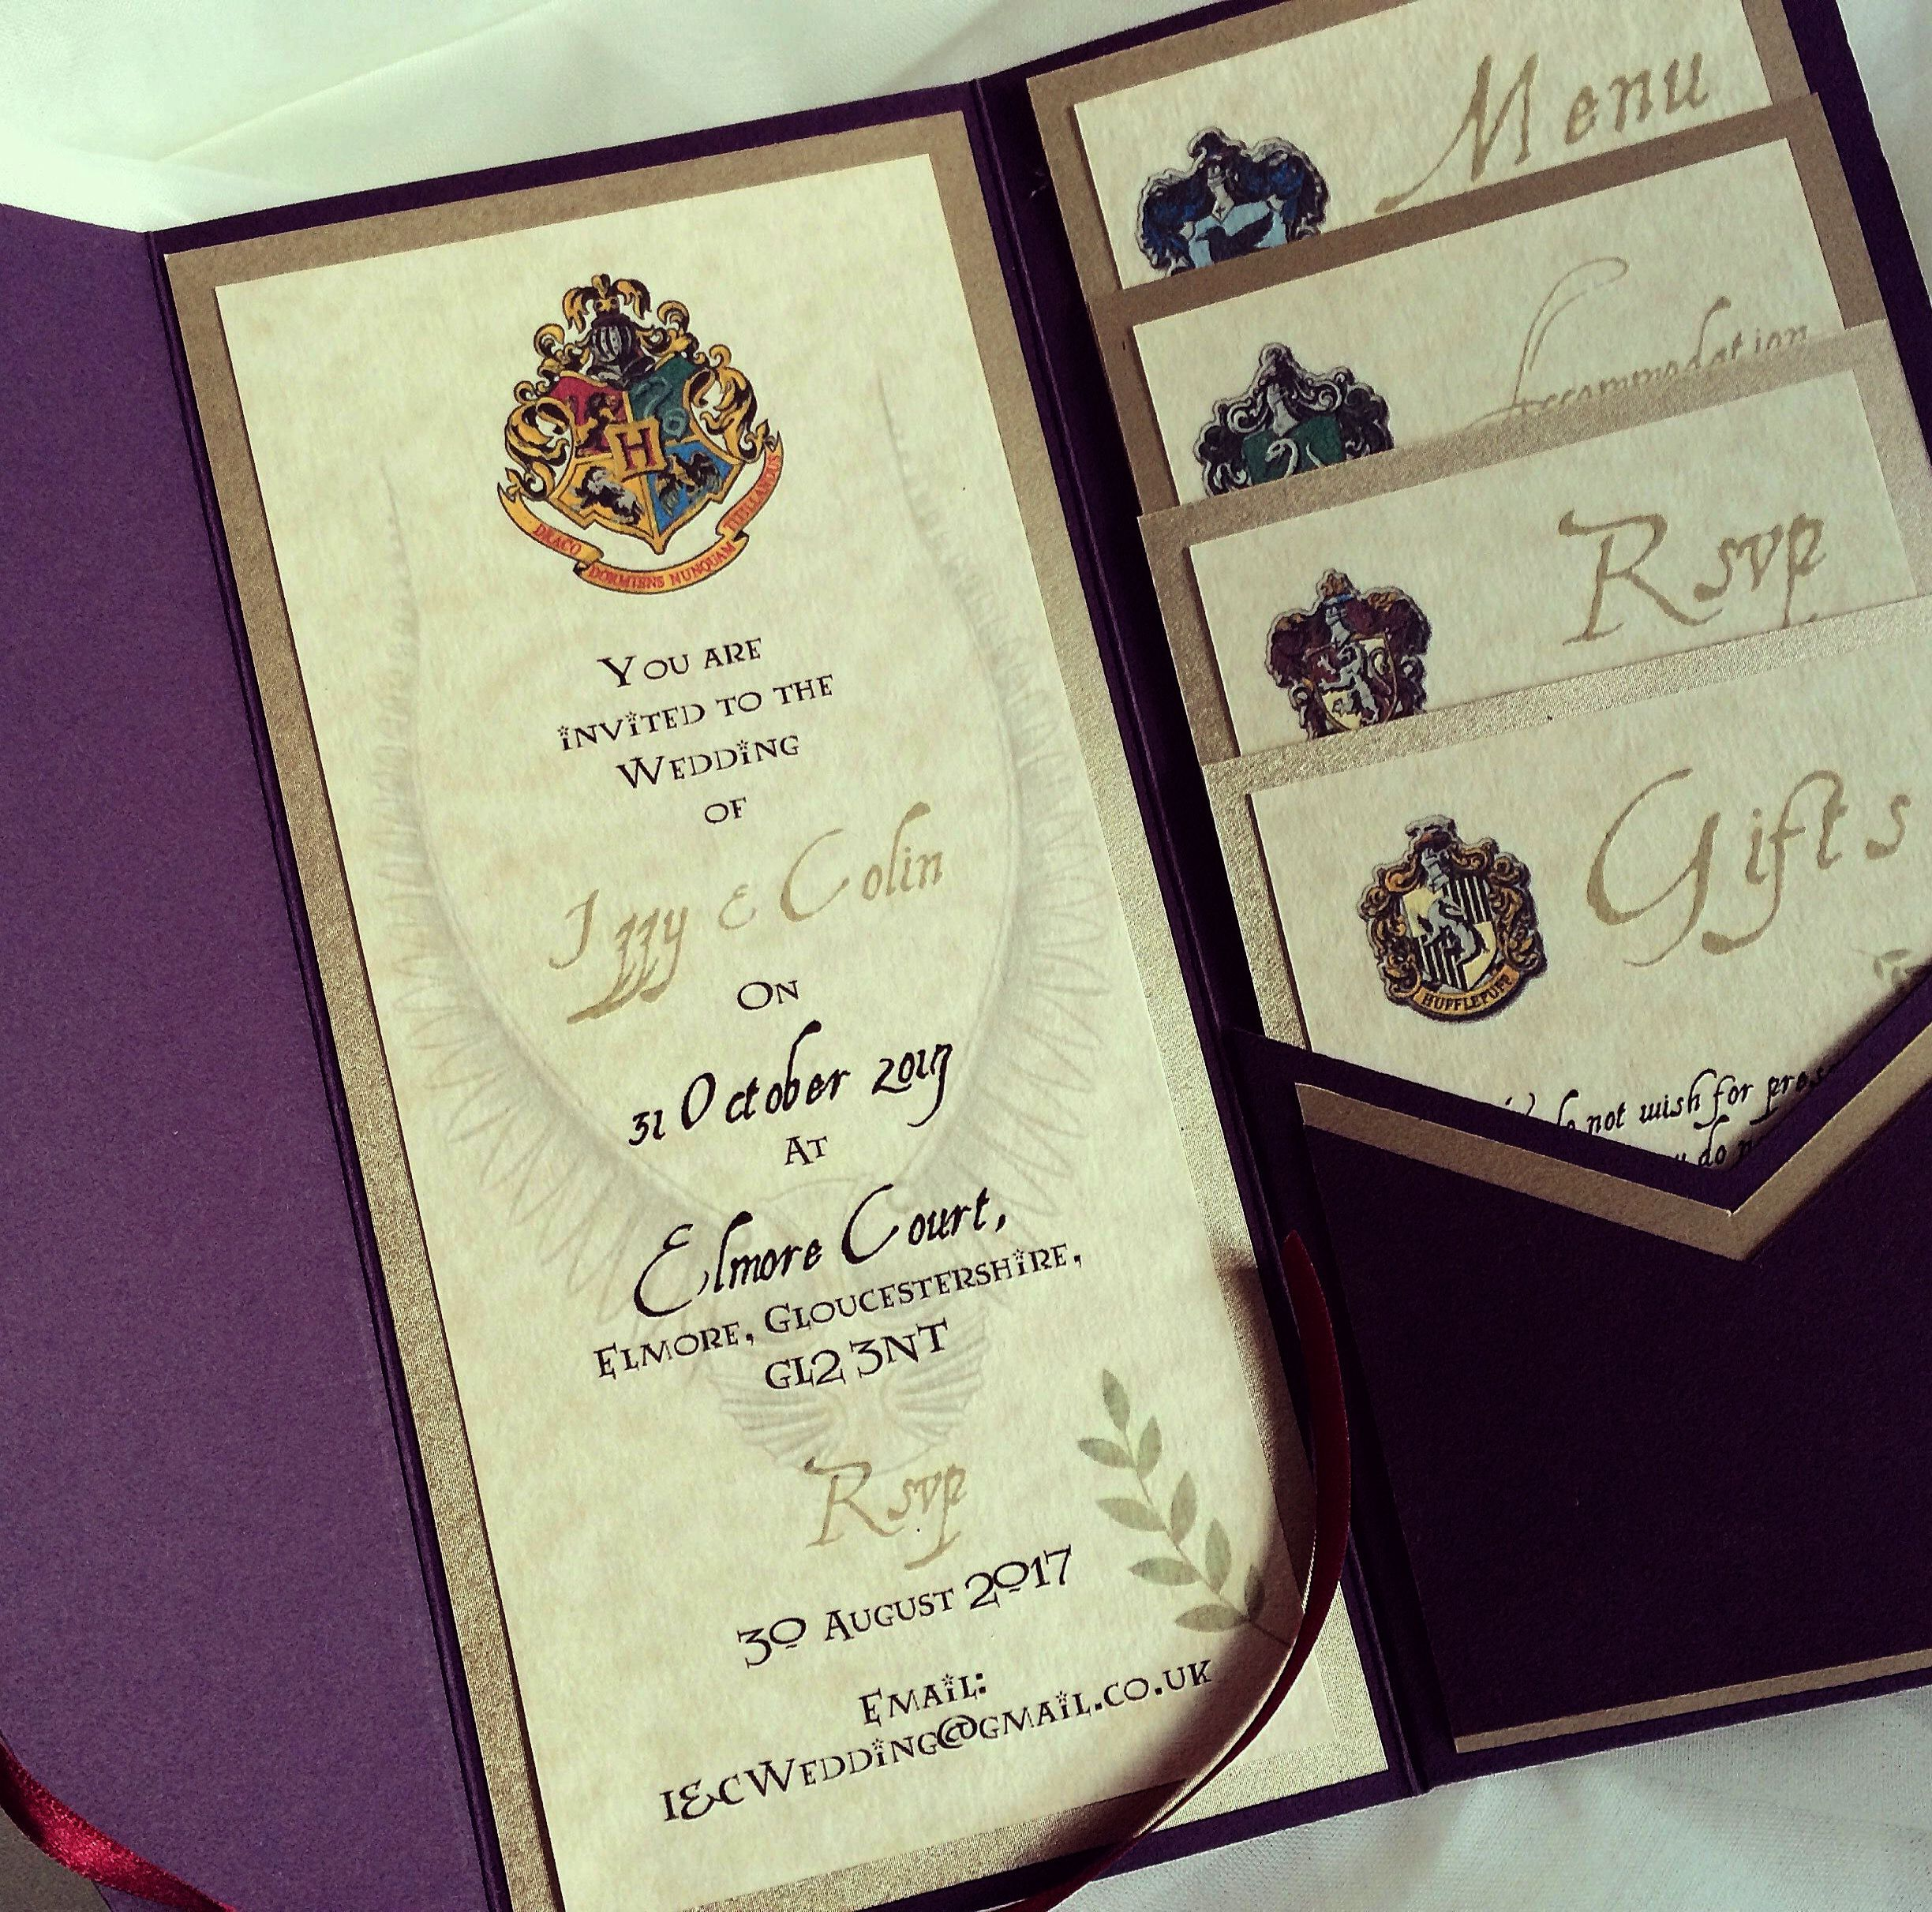 Harry Potter Movies In A Row Harry Potter Character Justin Lot Harry Pott Harry Potter Wedding Theme Harry Potter Wedding Invitations Harry Potter Invitations